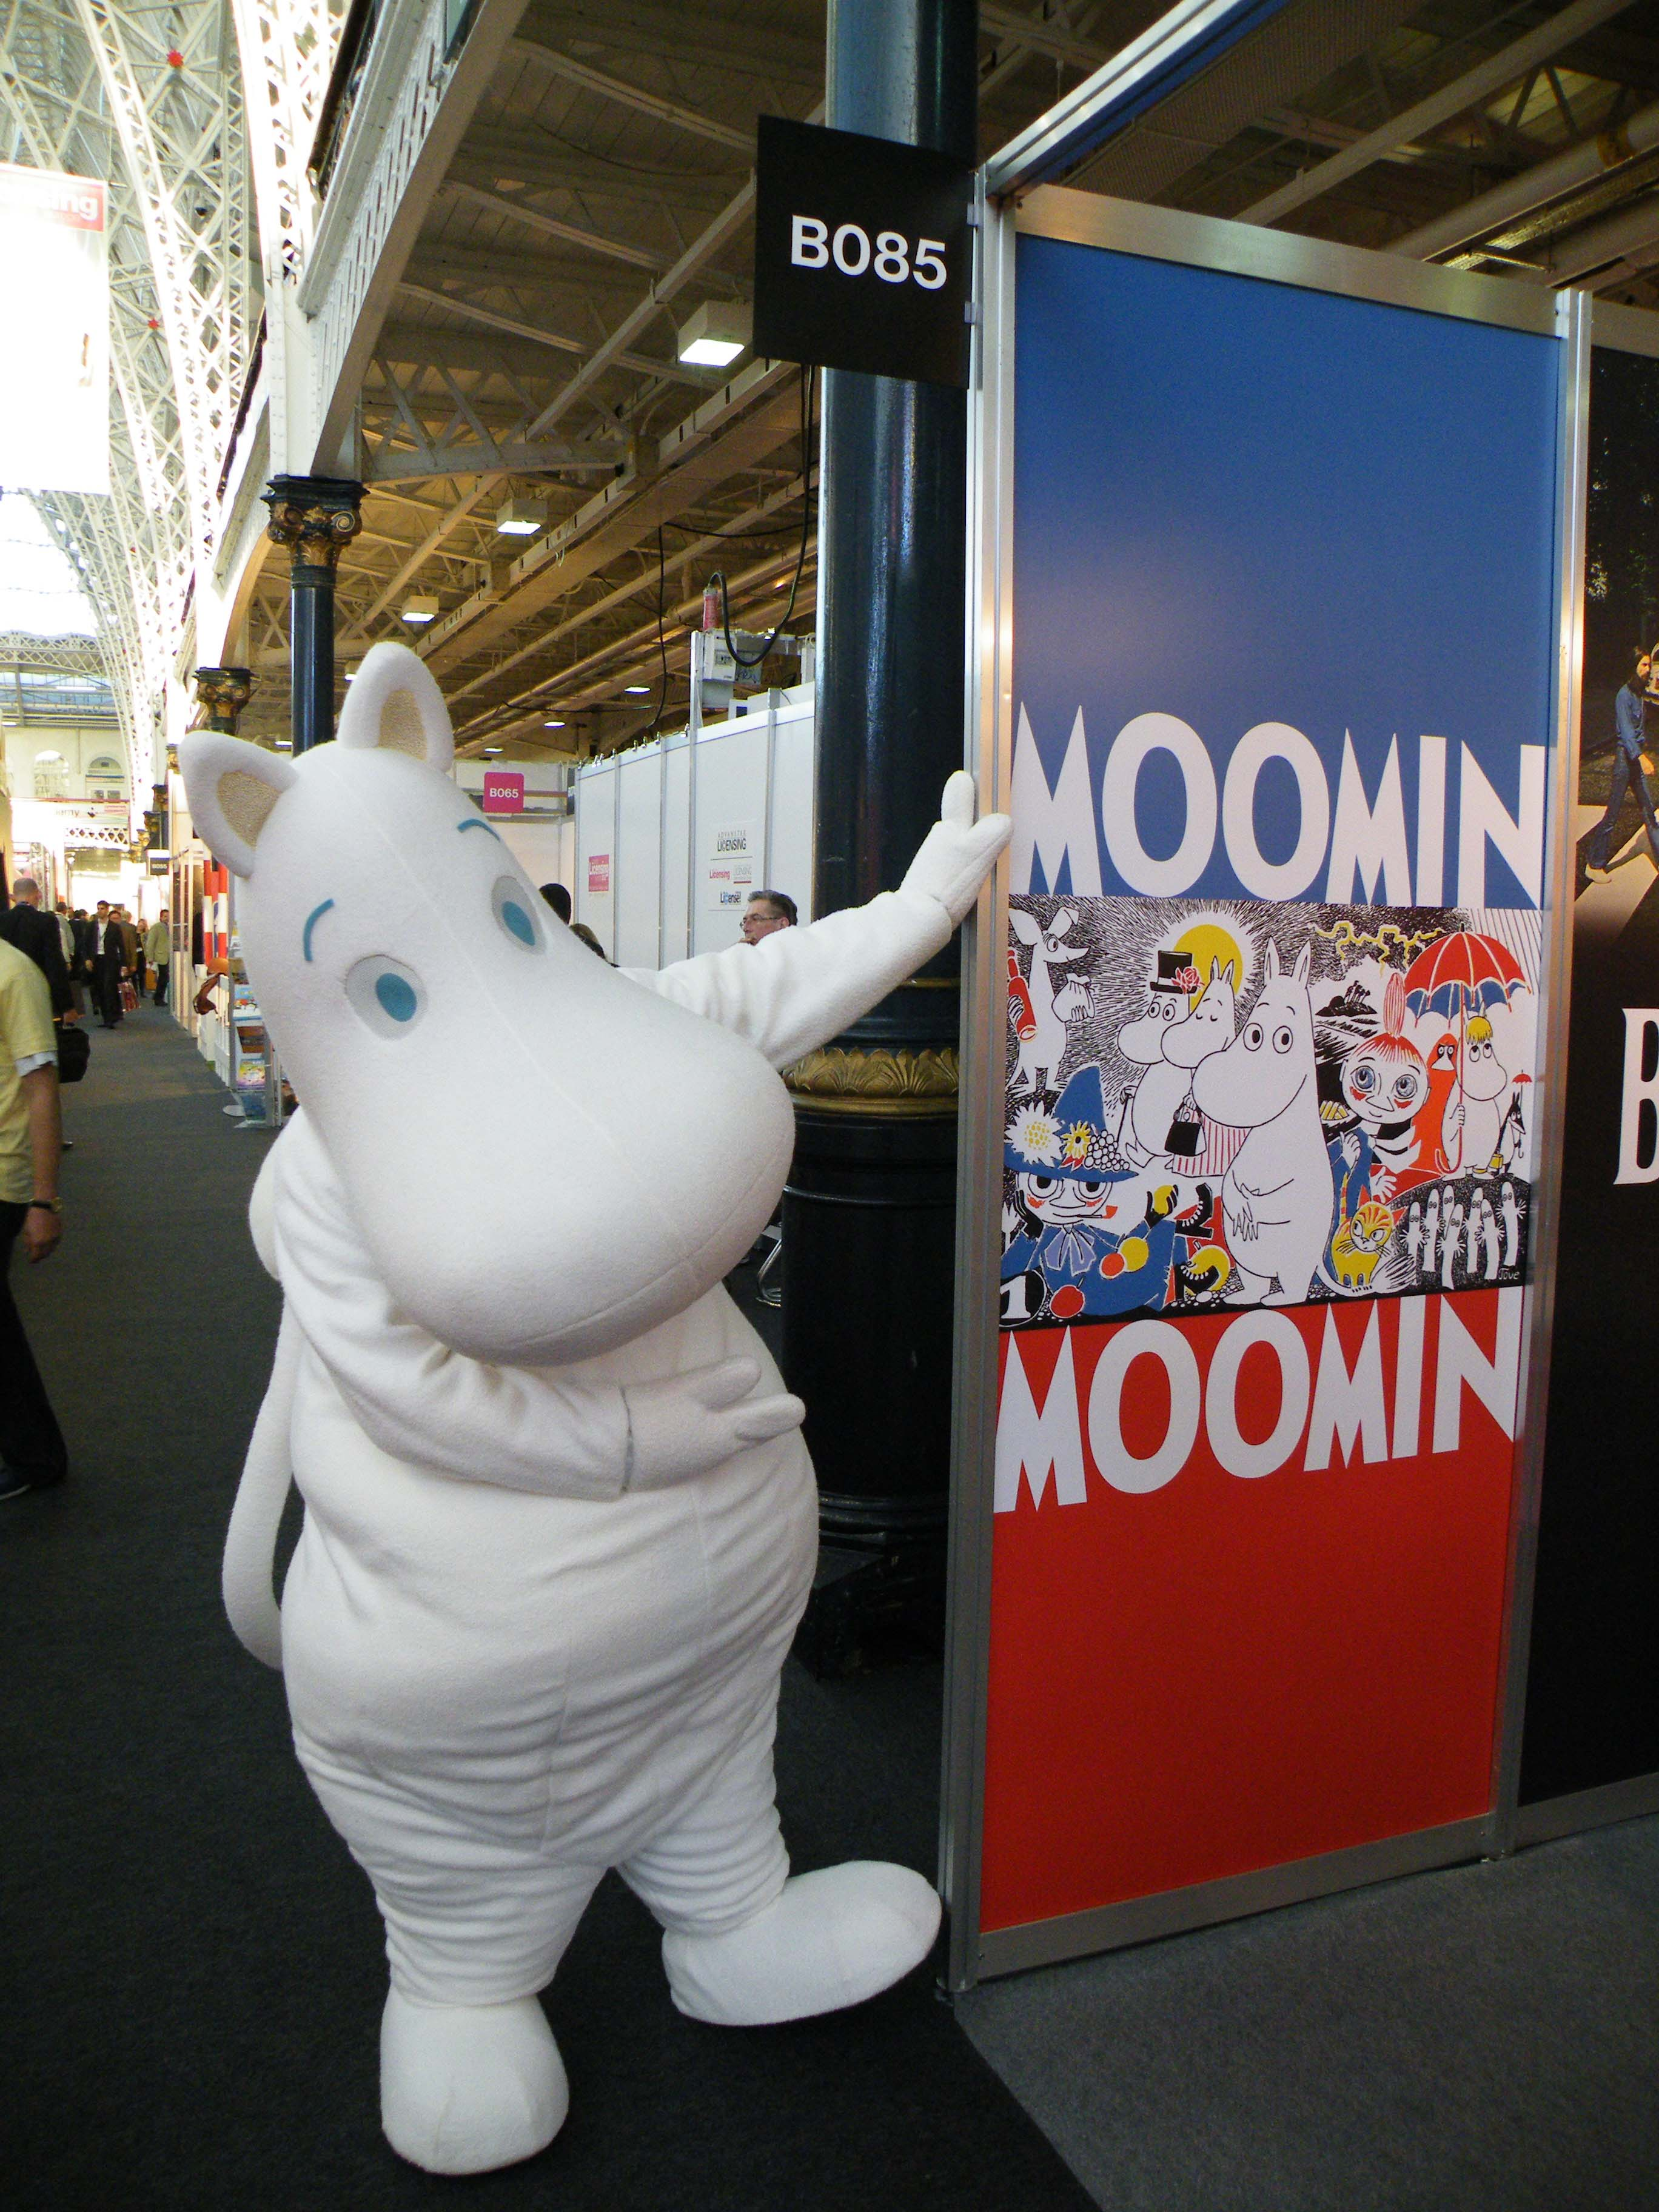 Moomin mascot in action